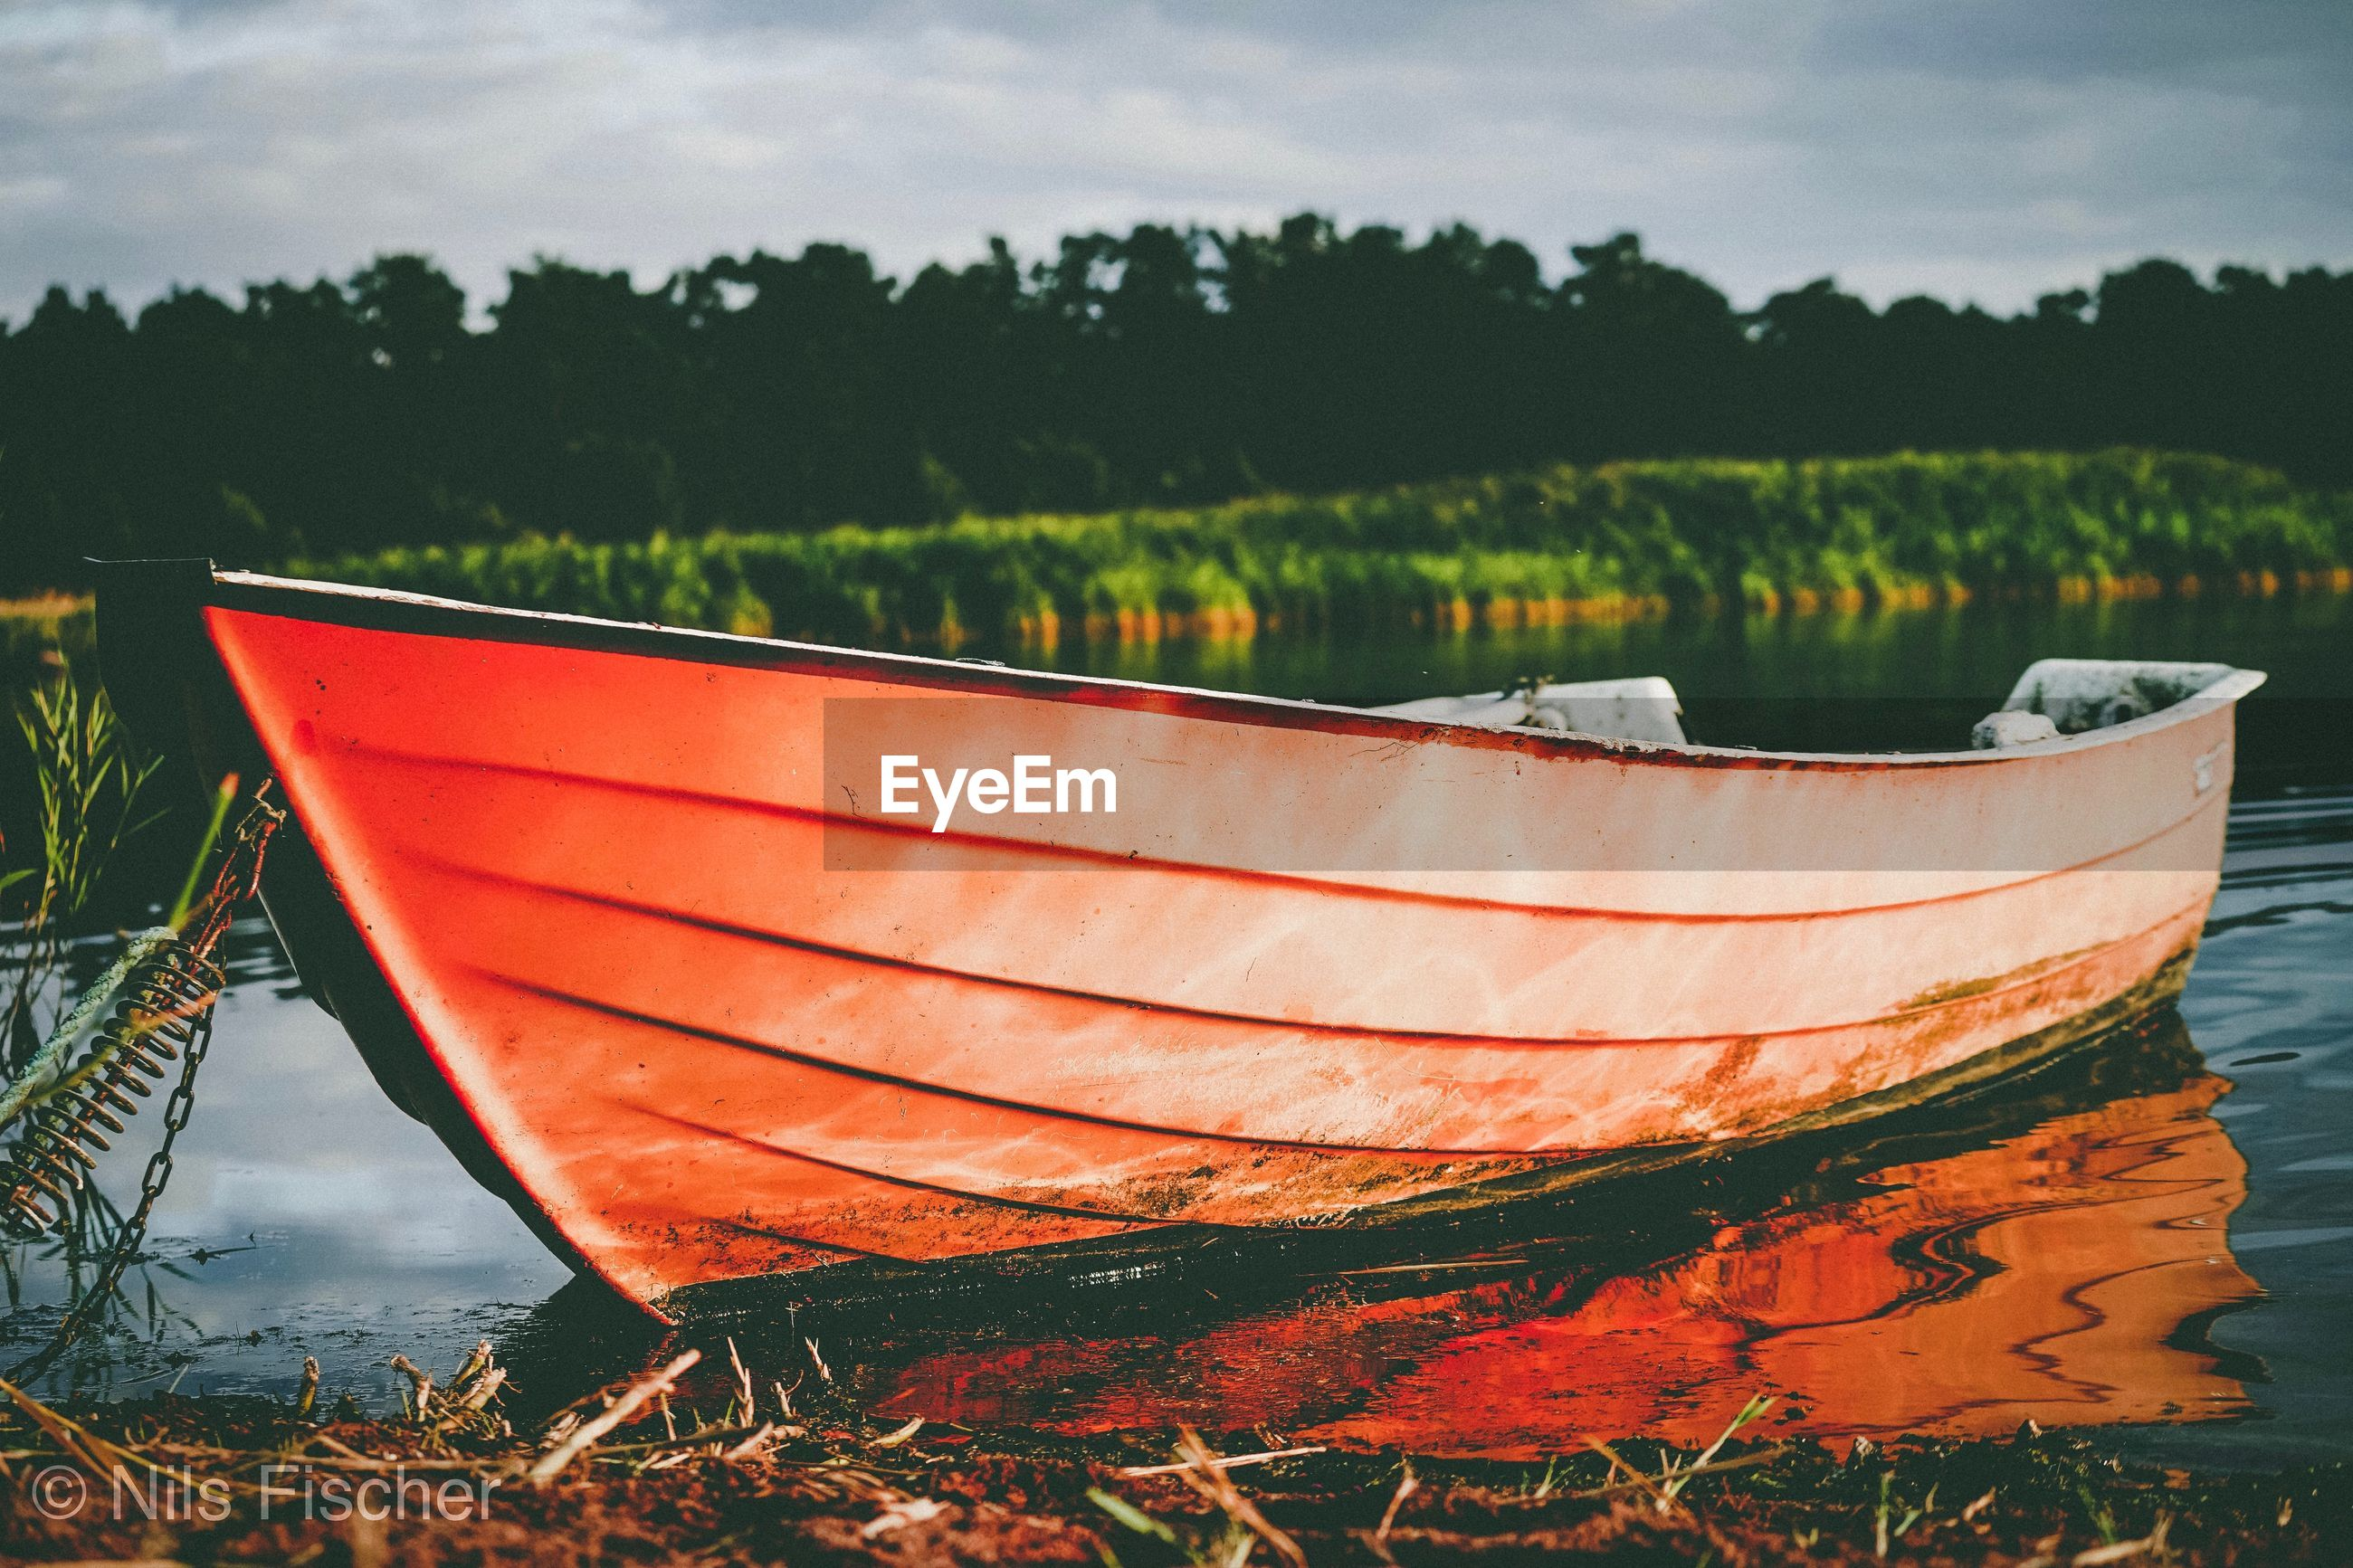 RED BOAT MOORED ON LAKE AGAINST SKY